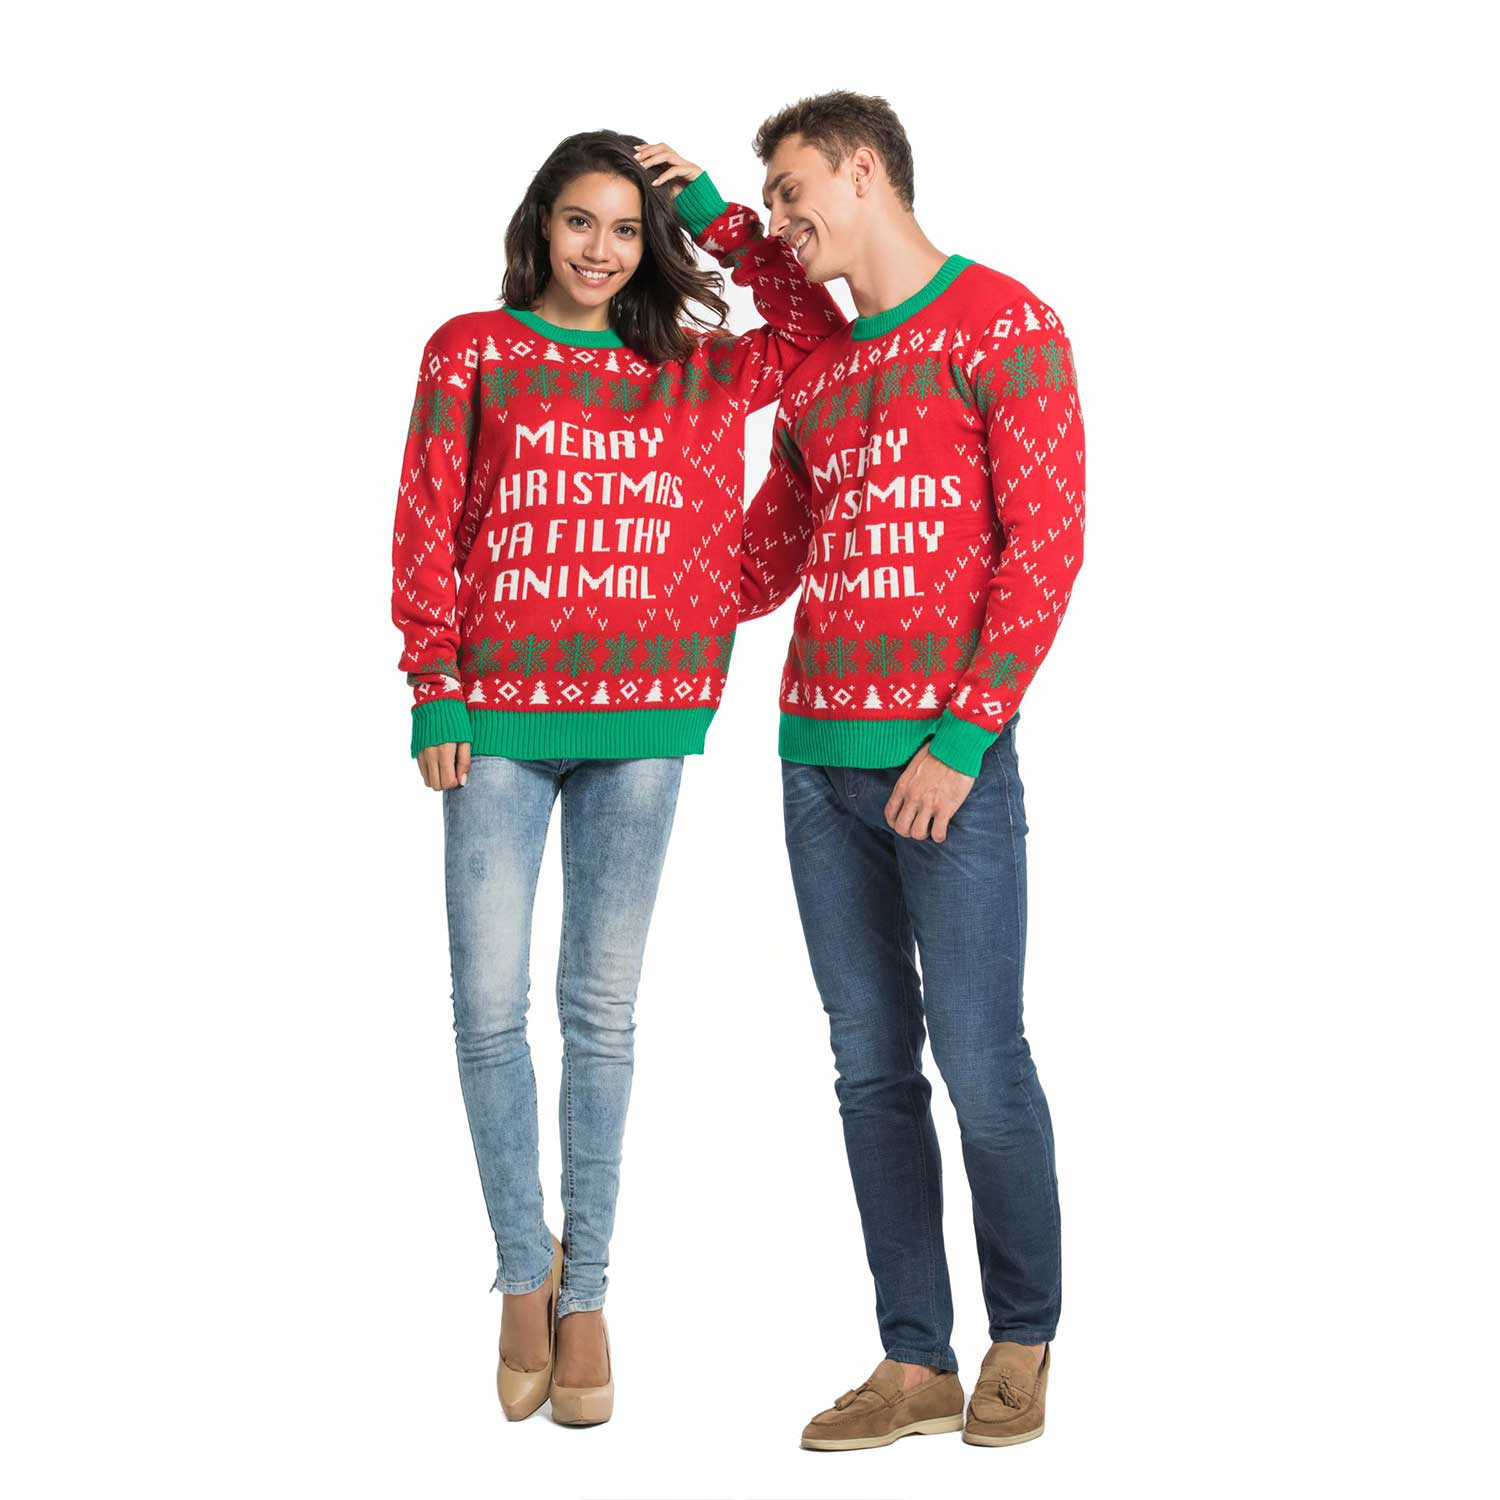 7f4fddc0847 Couples Ugly Christmas Sweater with Rude Slogan